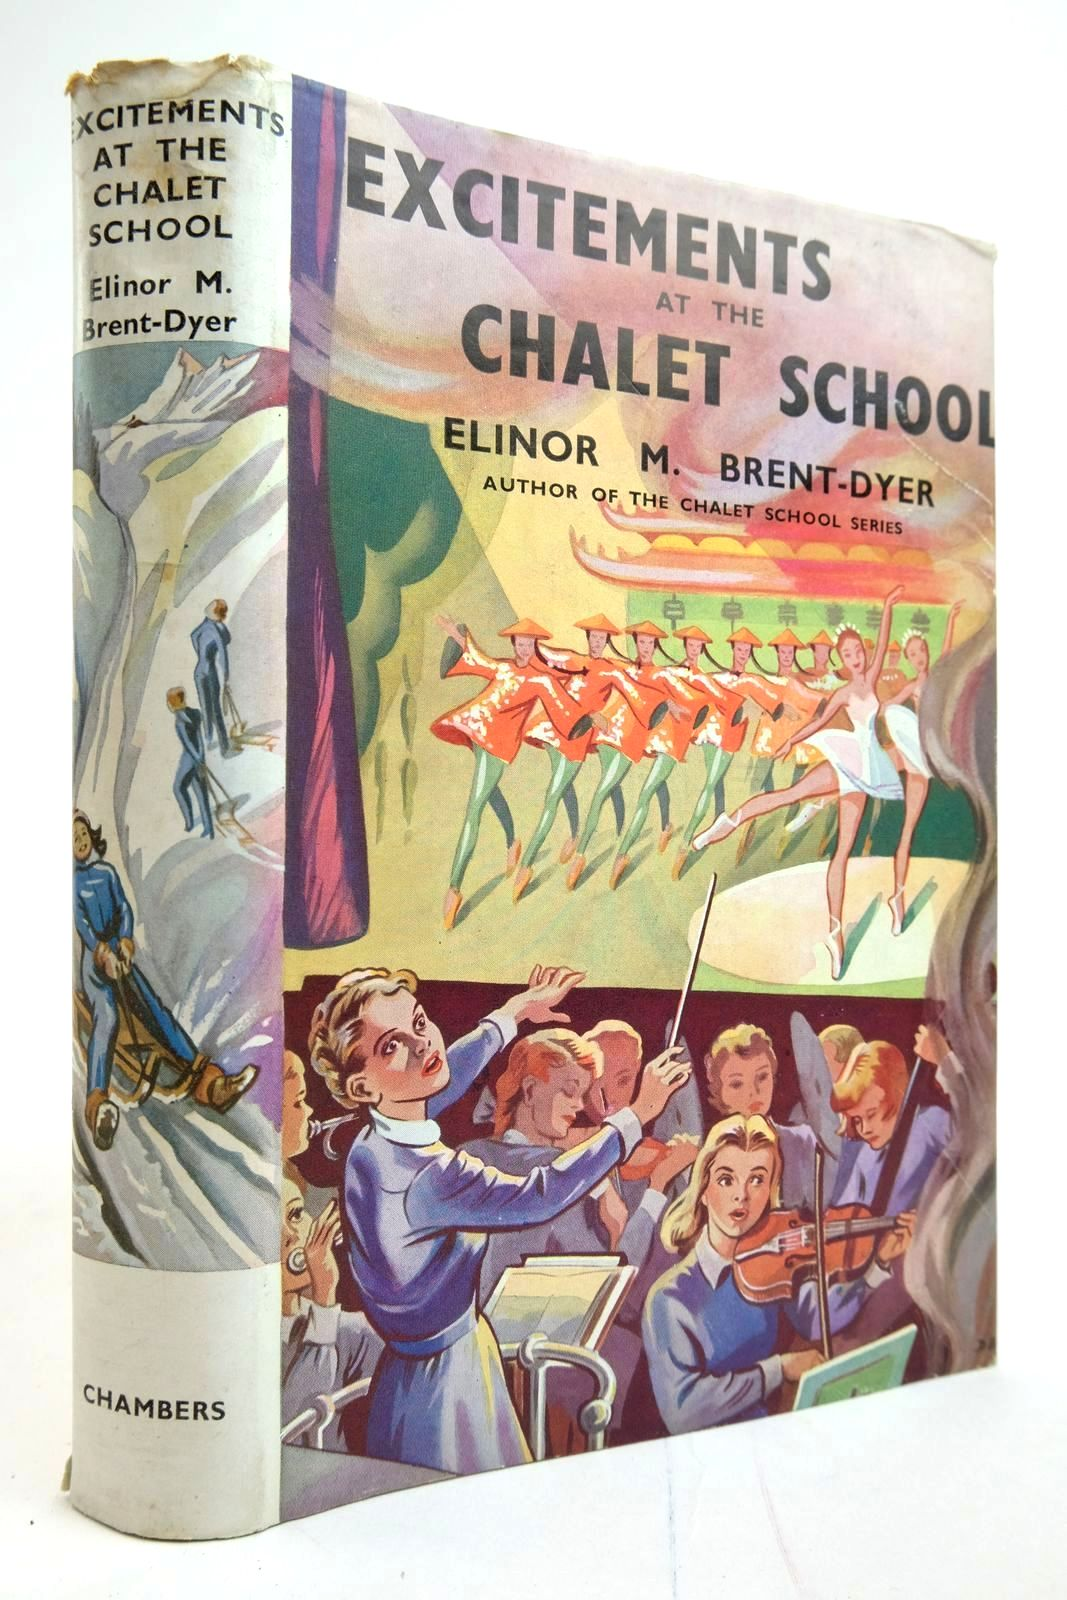 Photo of EXCITEMENTS AT THE CHALET SCHOOL written by Brent-Dyer, Elinor M. illustrated by Brook, D. published by W. & R. Chambers Limited (STOCK CODE: 2135232)  for sale by Stella & Rose's Books